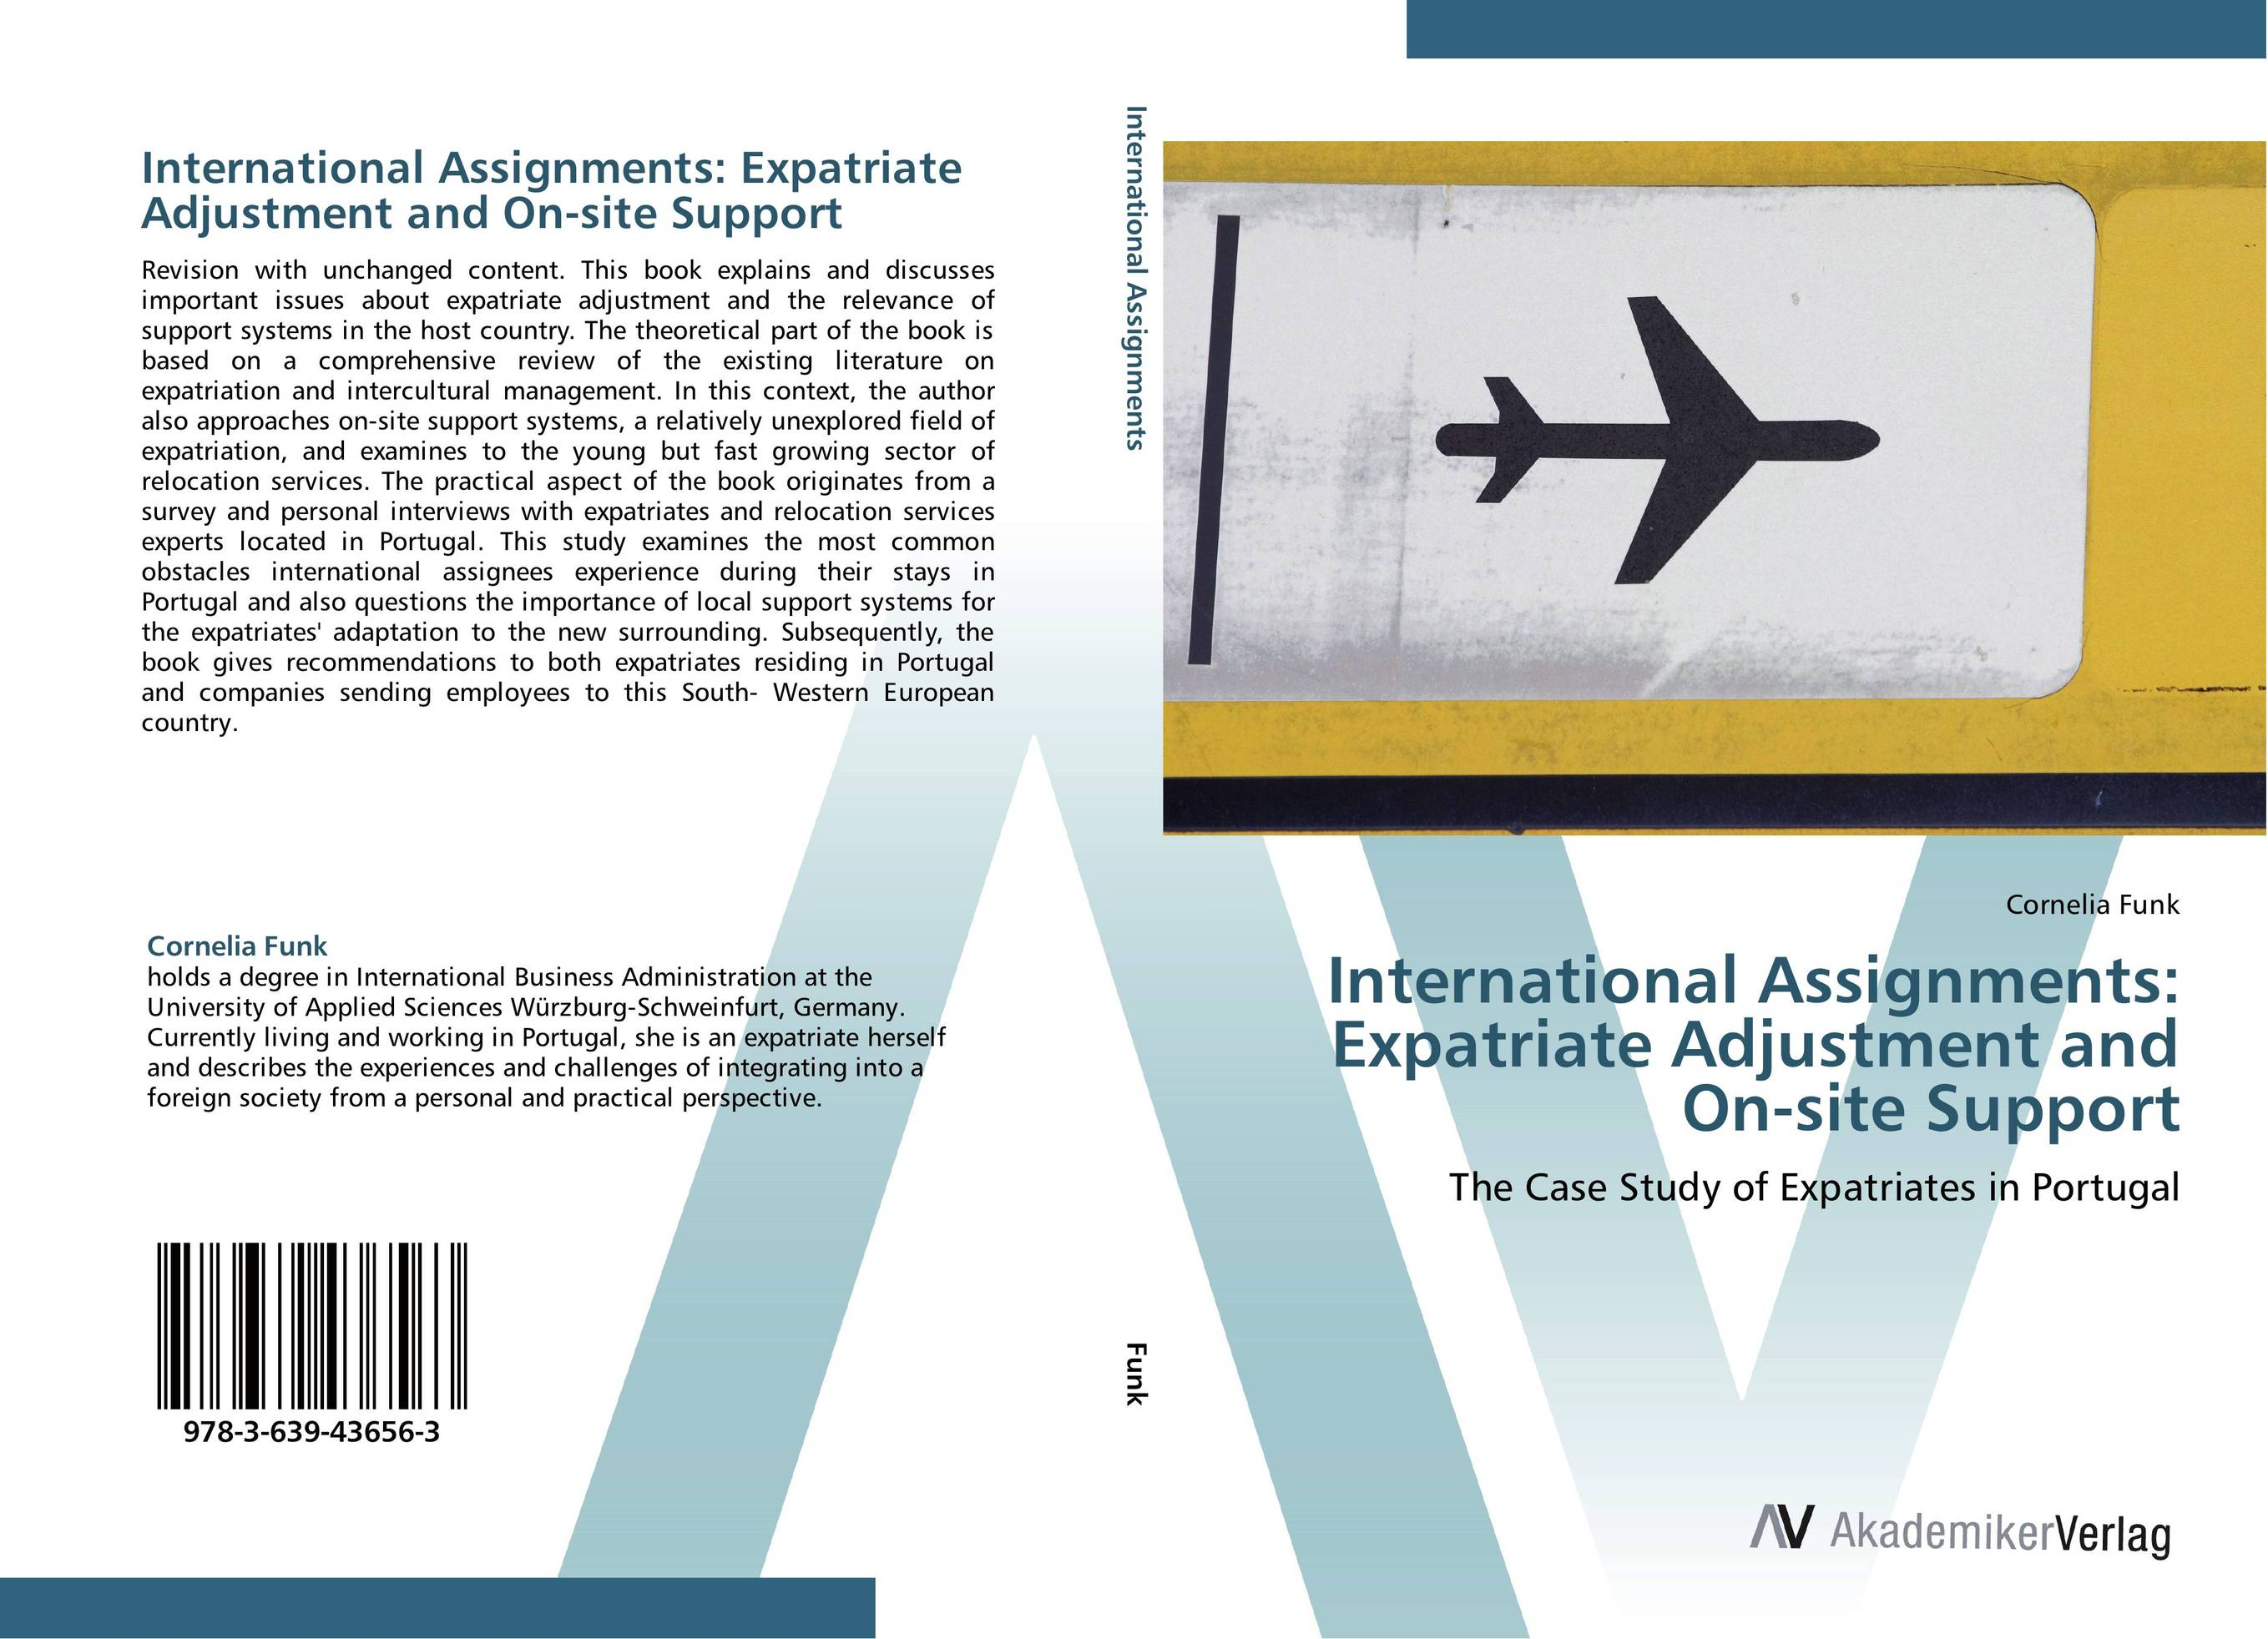 International Assignments: Expatriate Adjustment and On-site Support